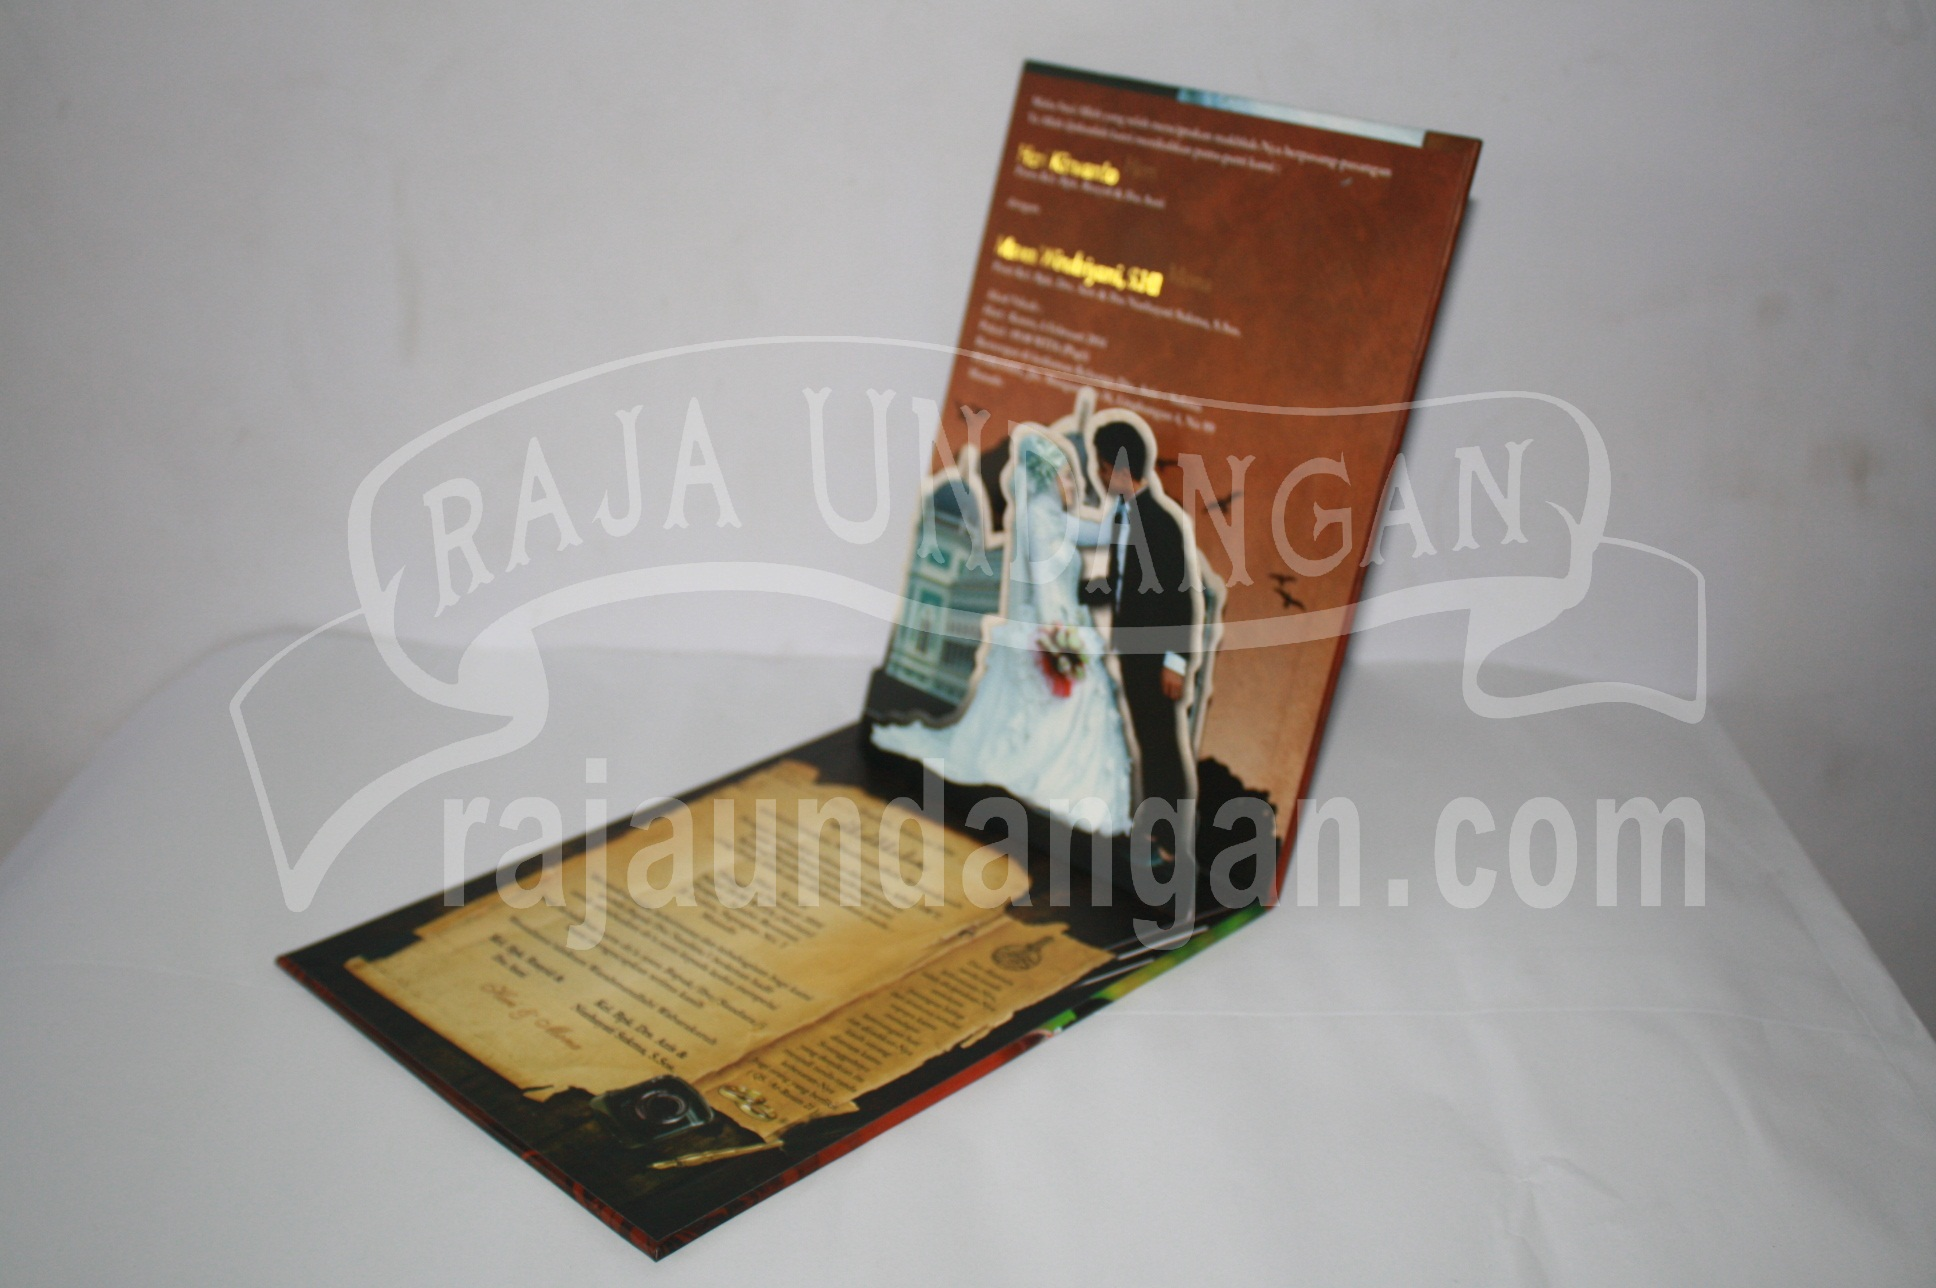 Undangan Pernikahan Hardcover Pop Up Heri dan Mona EDC 43 3 - Membuat Wedding Invitations Unik dan Simple di Sawahan